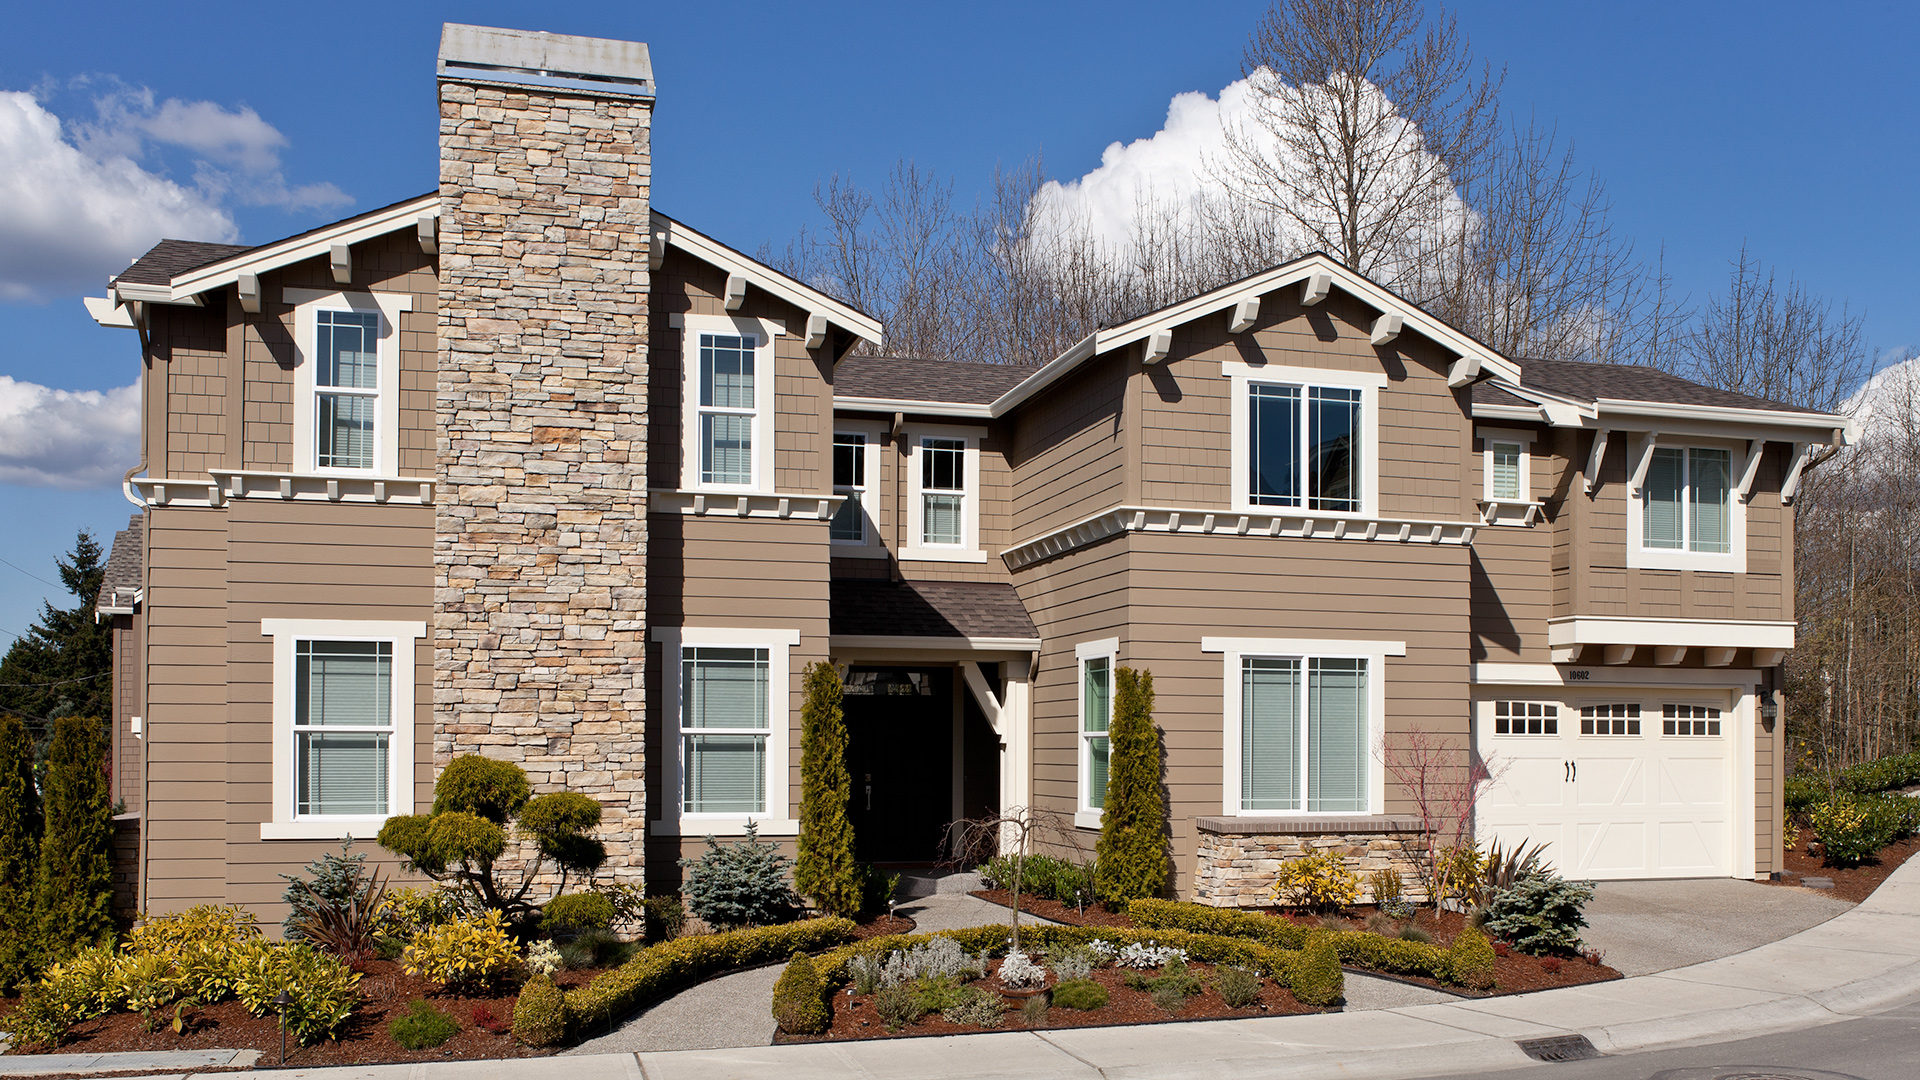 The community boasts a variety of home designs to choose from.